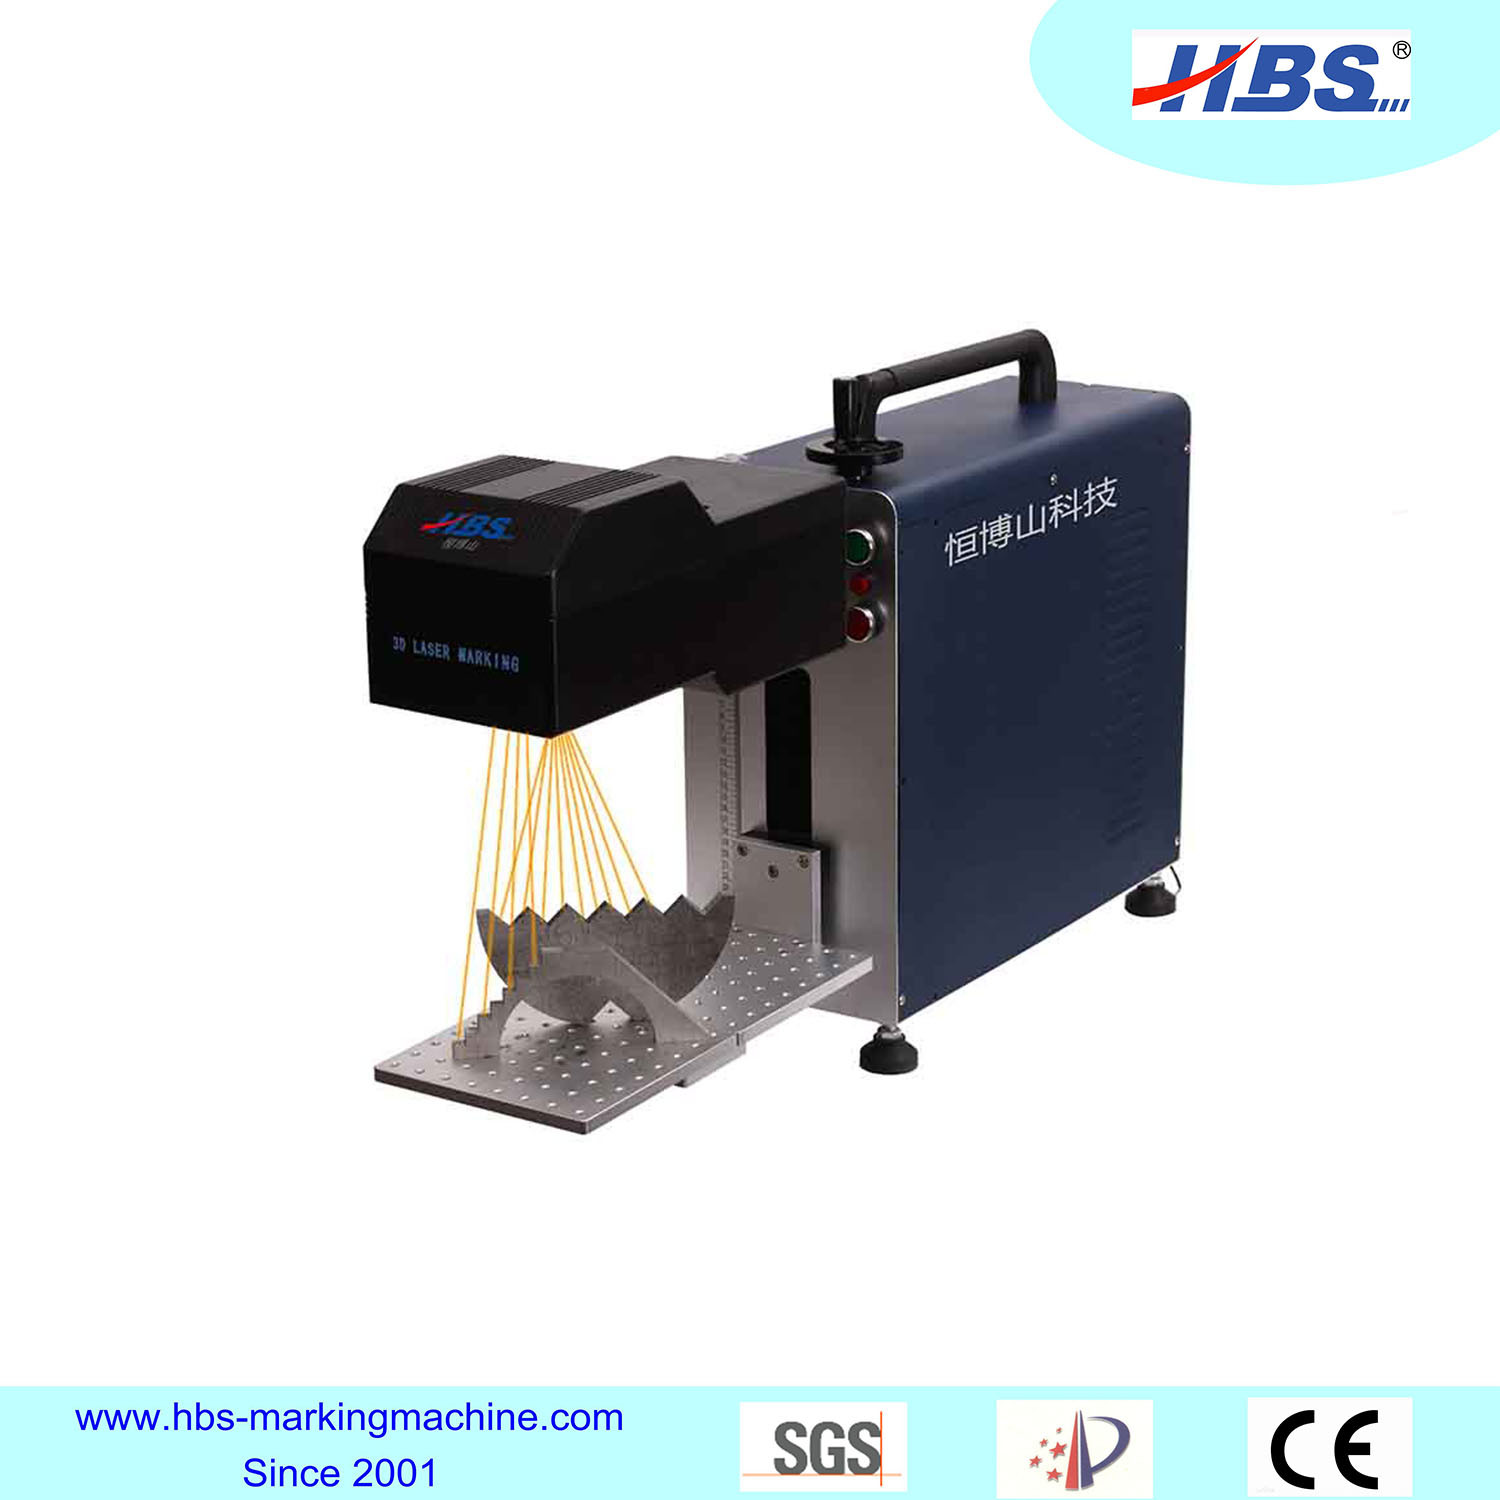 New Generation Big Marking Area 3D Fiber Laser Marking Machine